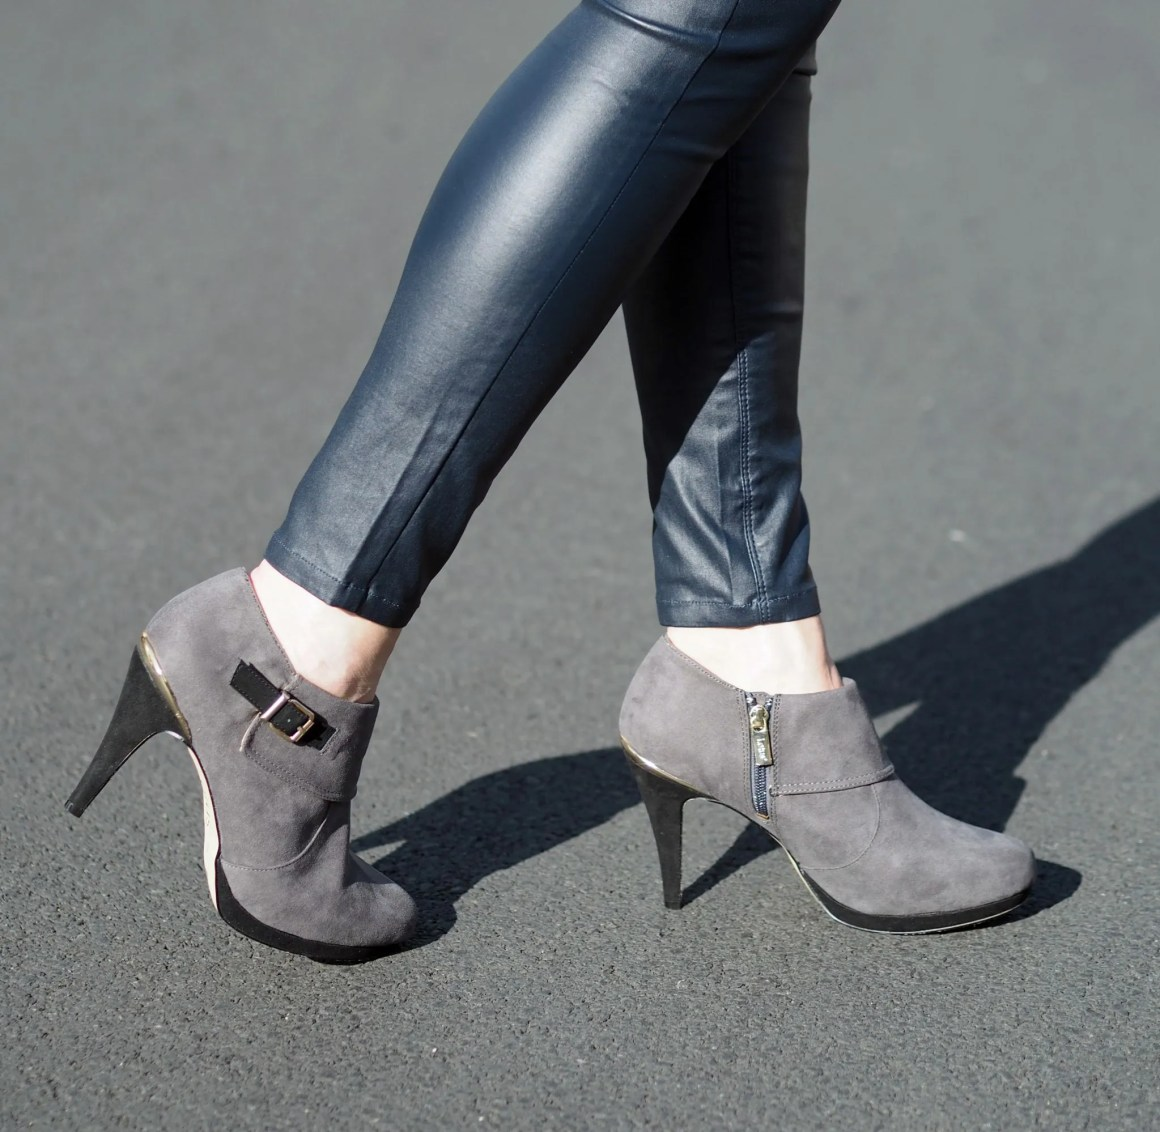 what-lizzy-loves-coated-skinnies-leggings-high-heeled-ankle-boots-vollmer-lotus-grey